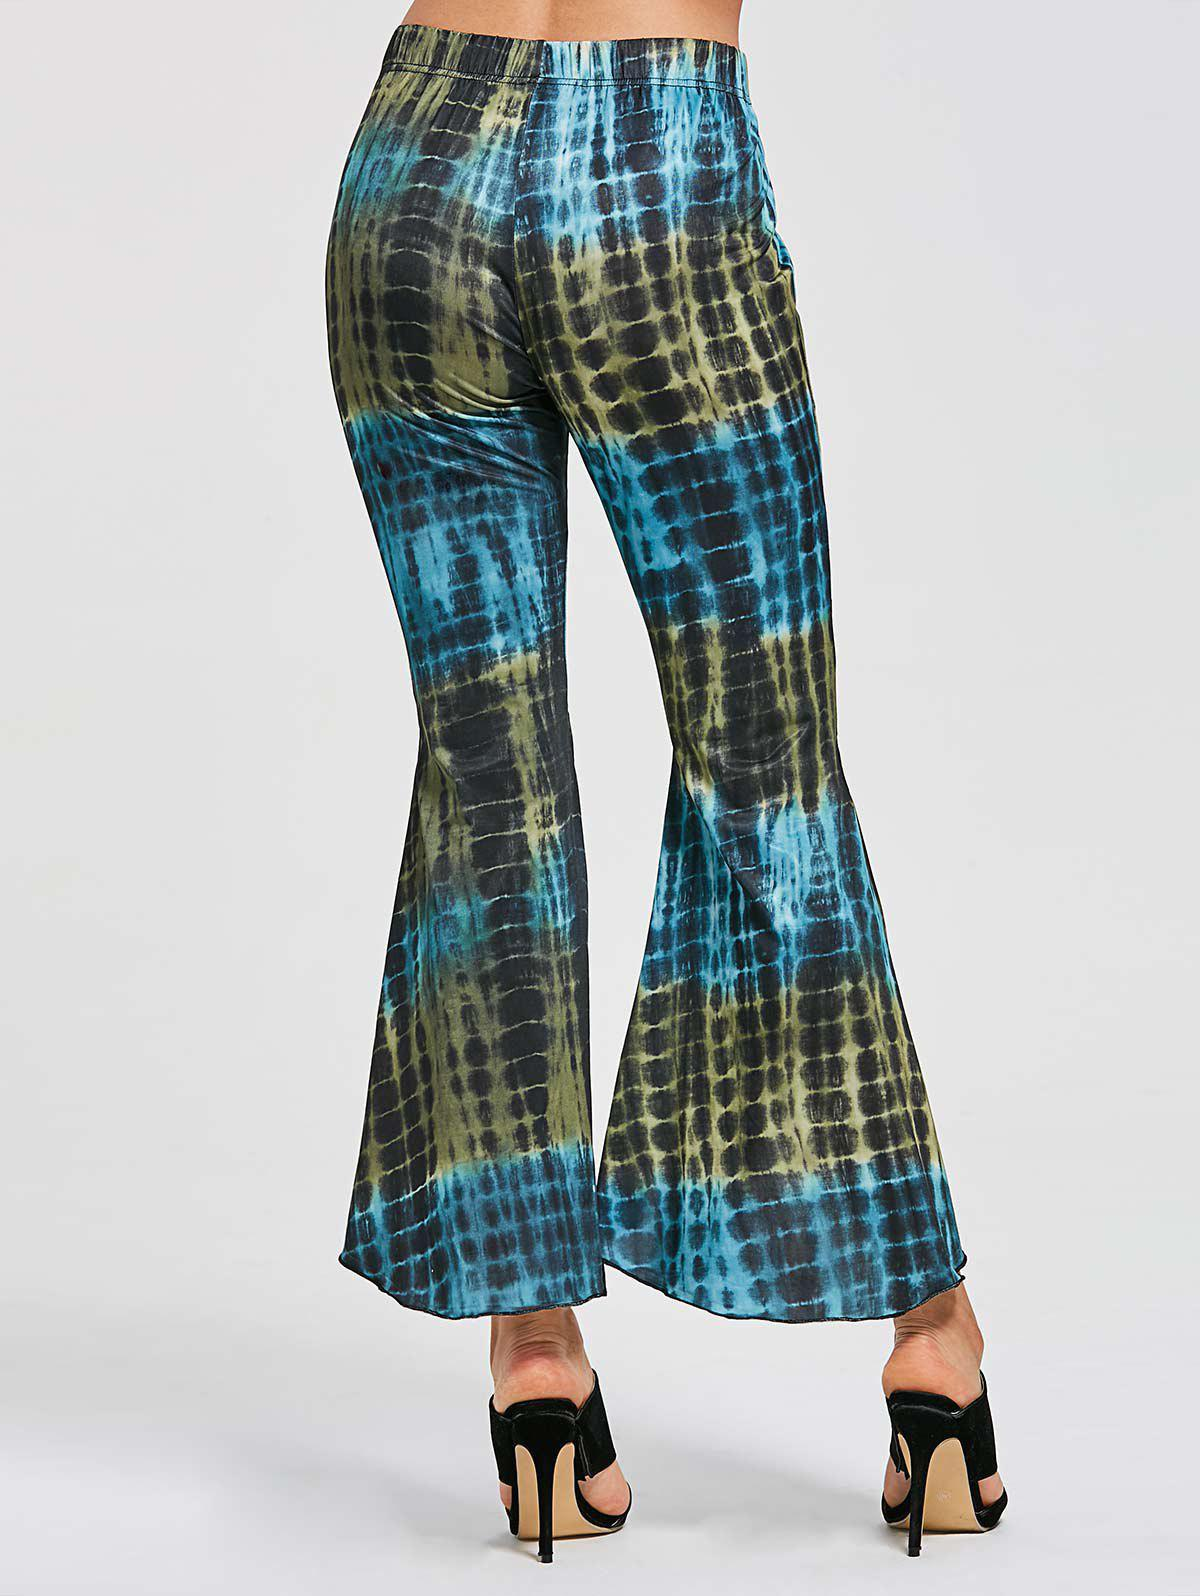 Flare Cover Up High Low Pants - COLORMIX XL